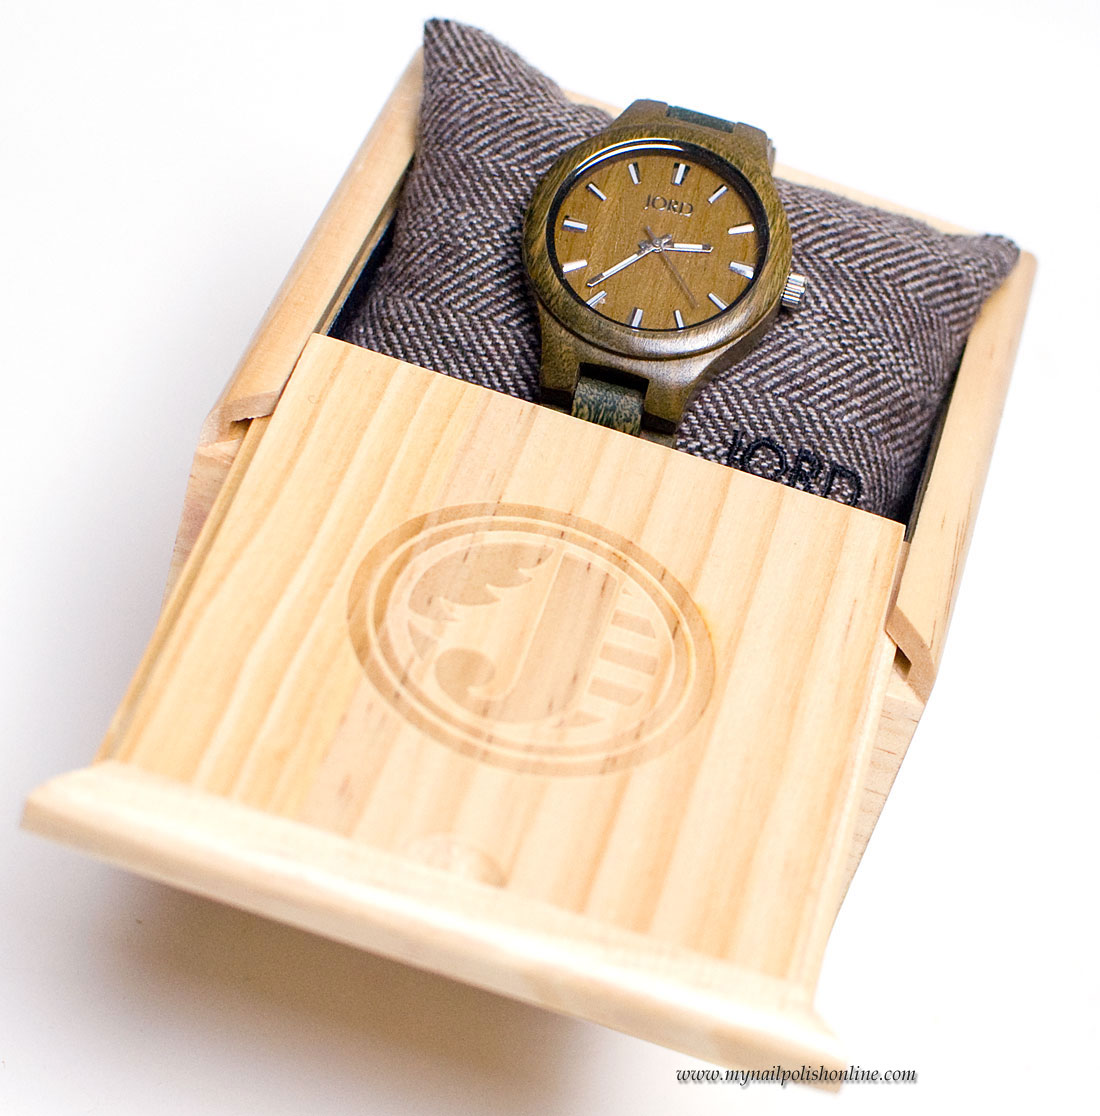 The watch in the box